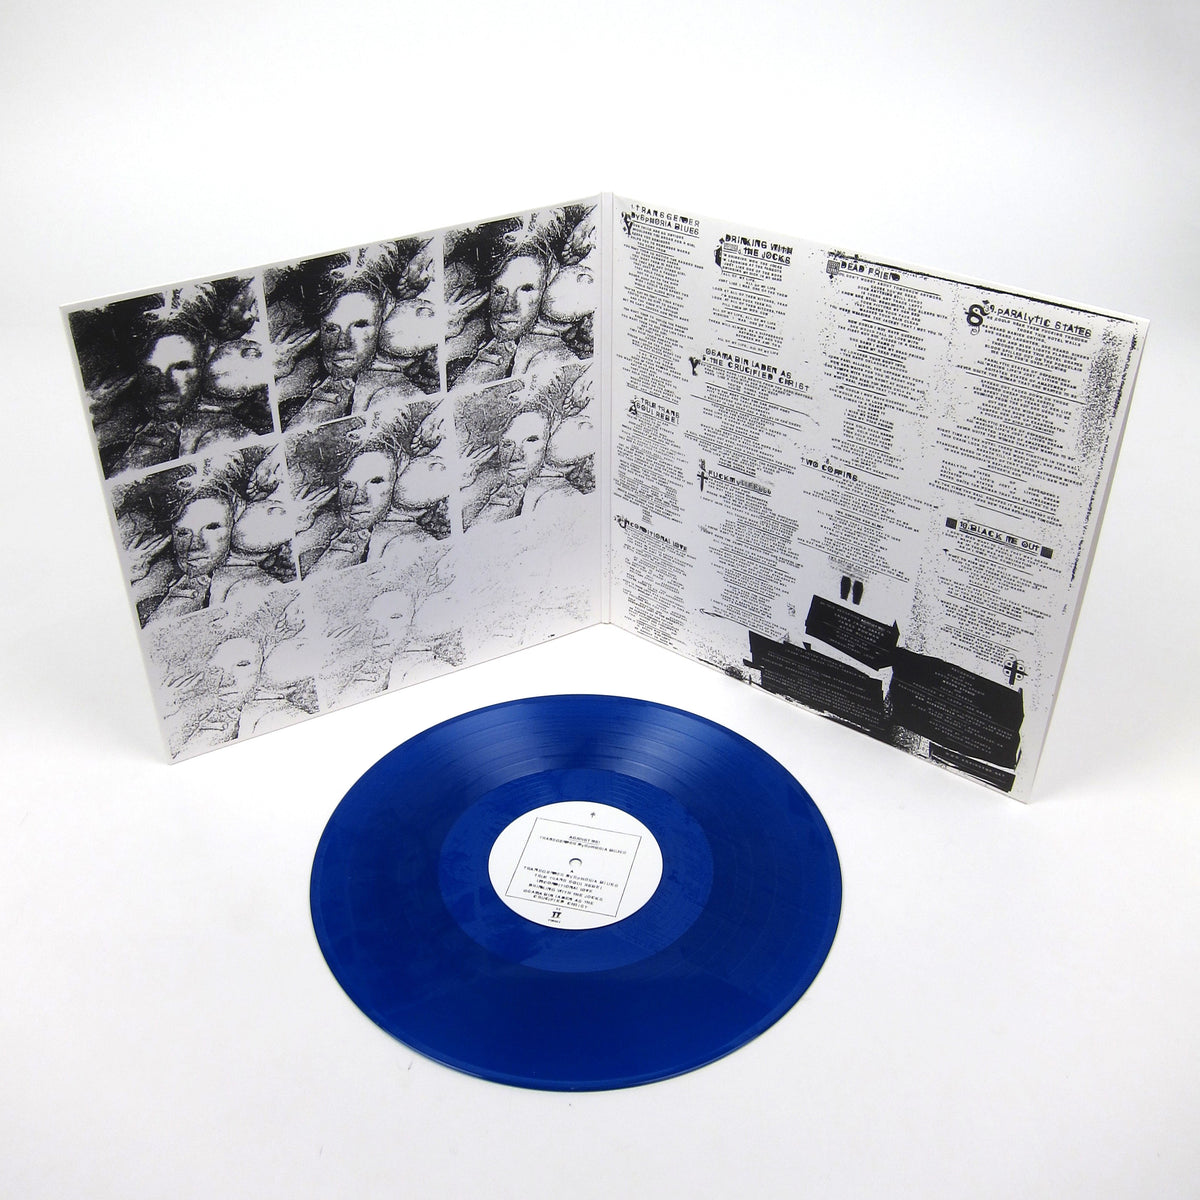 Against Me!: Transgender Dysphoria Blues (Colored Vinyl) Vinyl LP